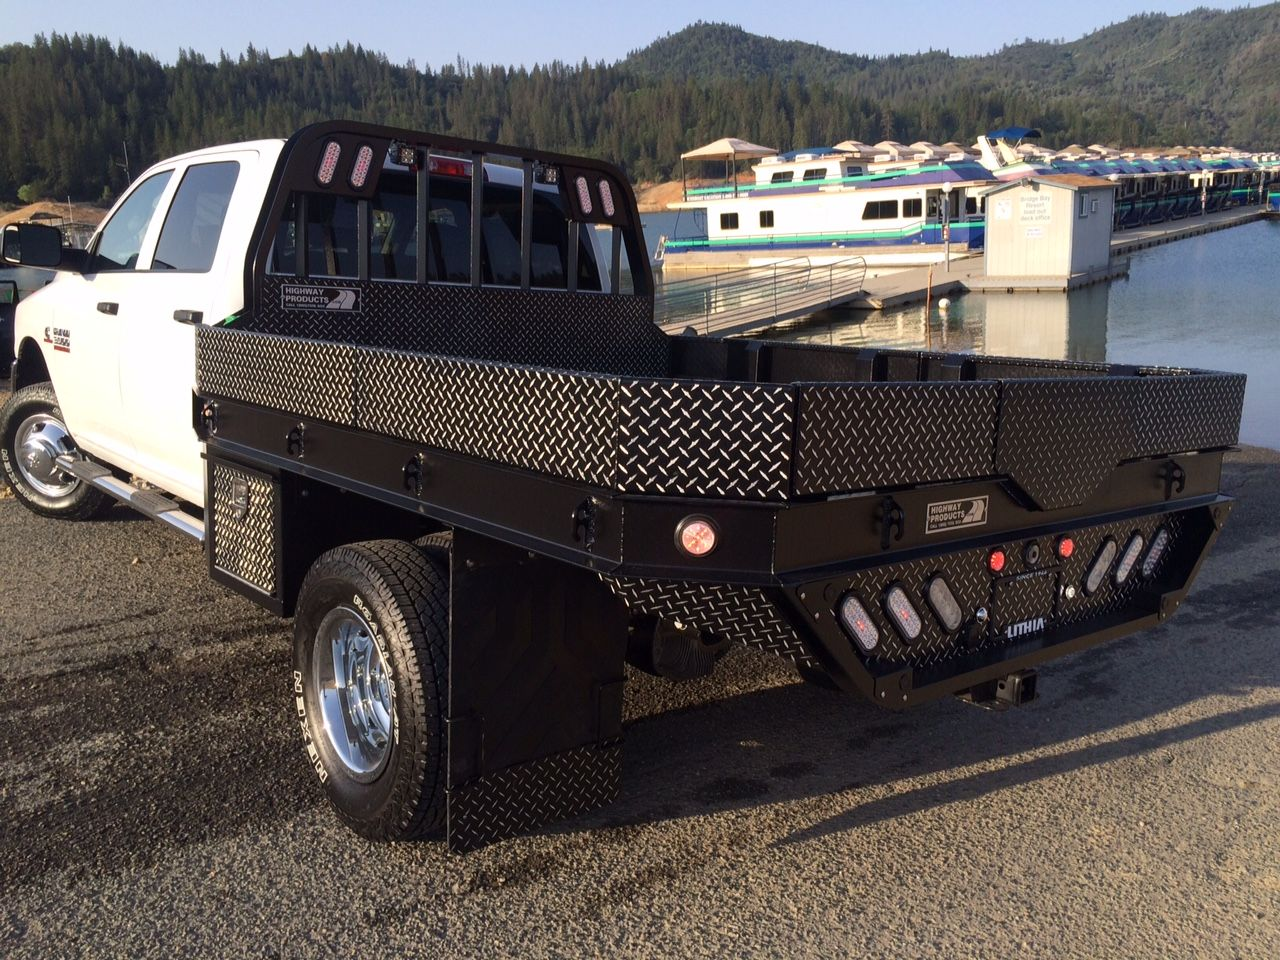 2015 dodge 3500 w hpi leopard strongback flatbed see more pics and learn more